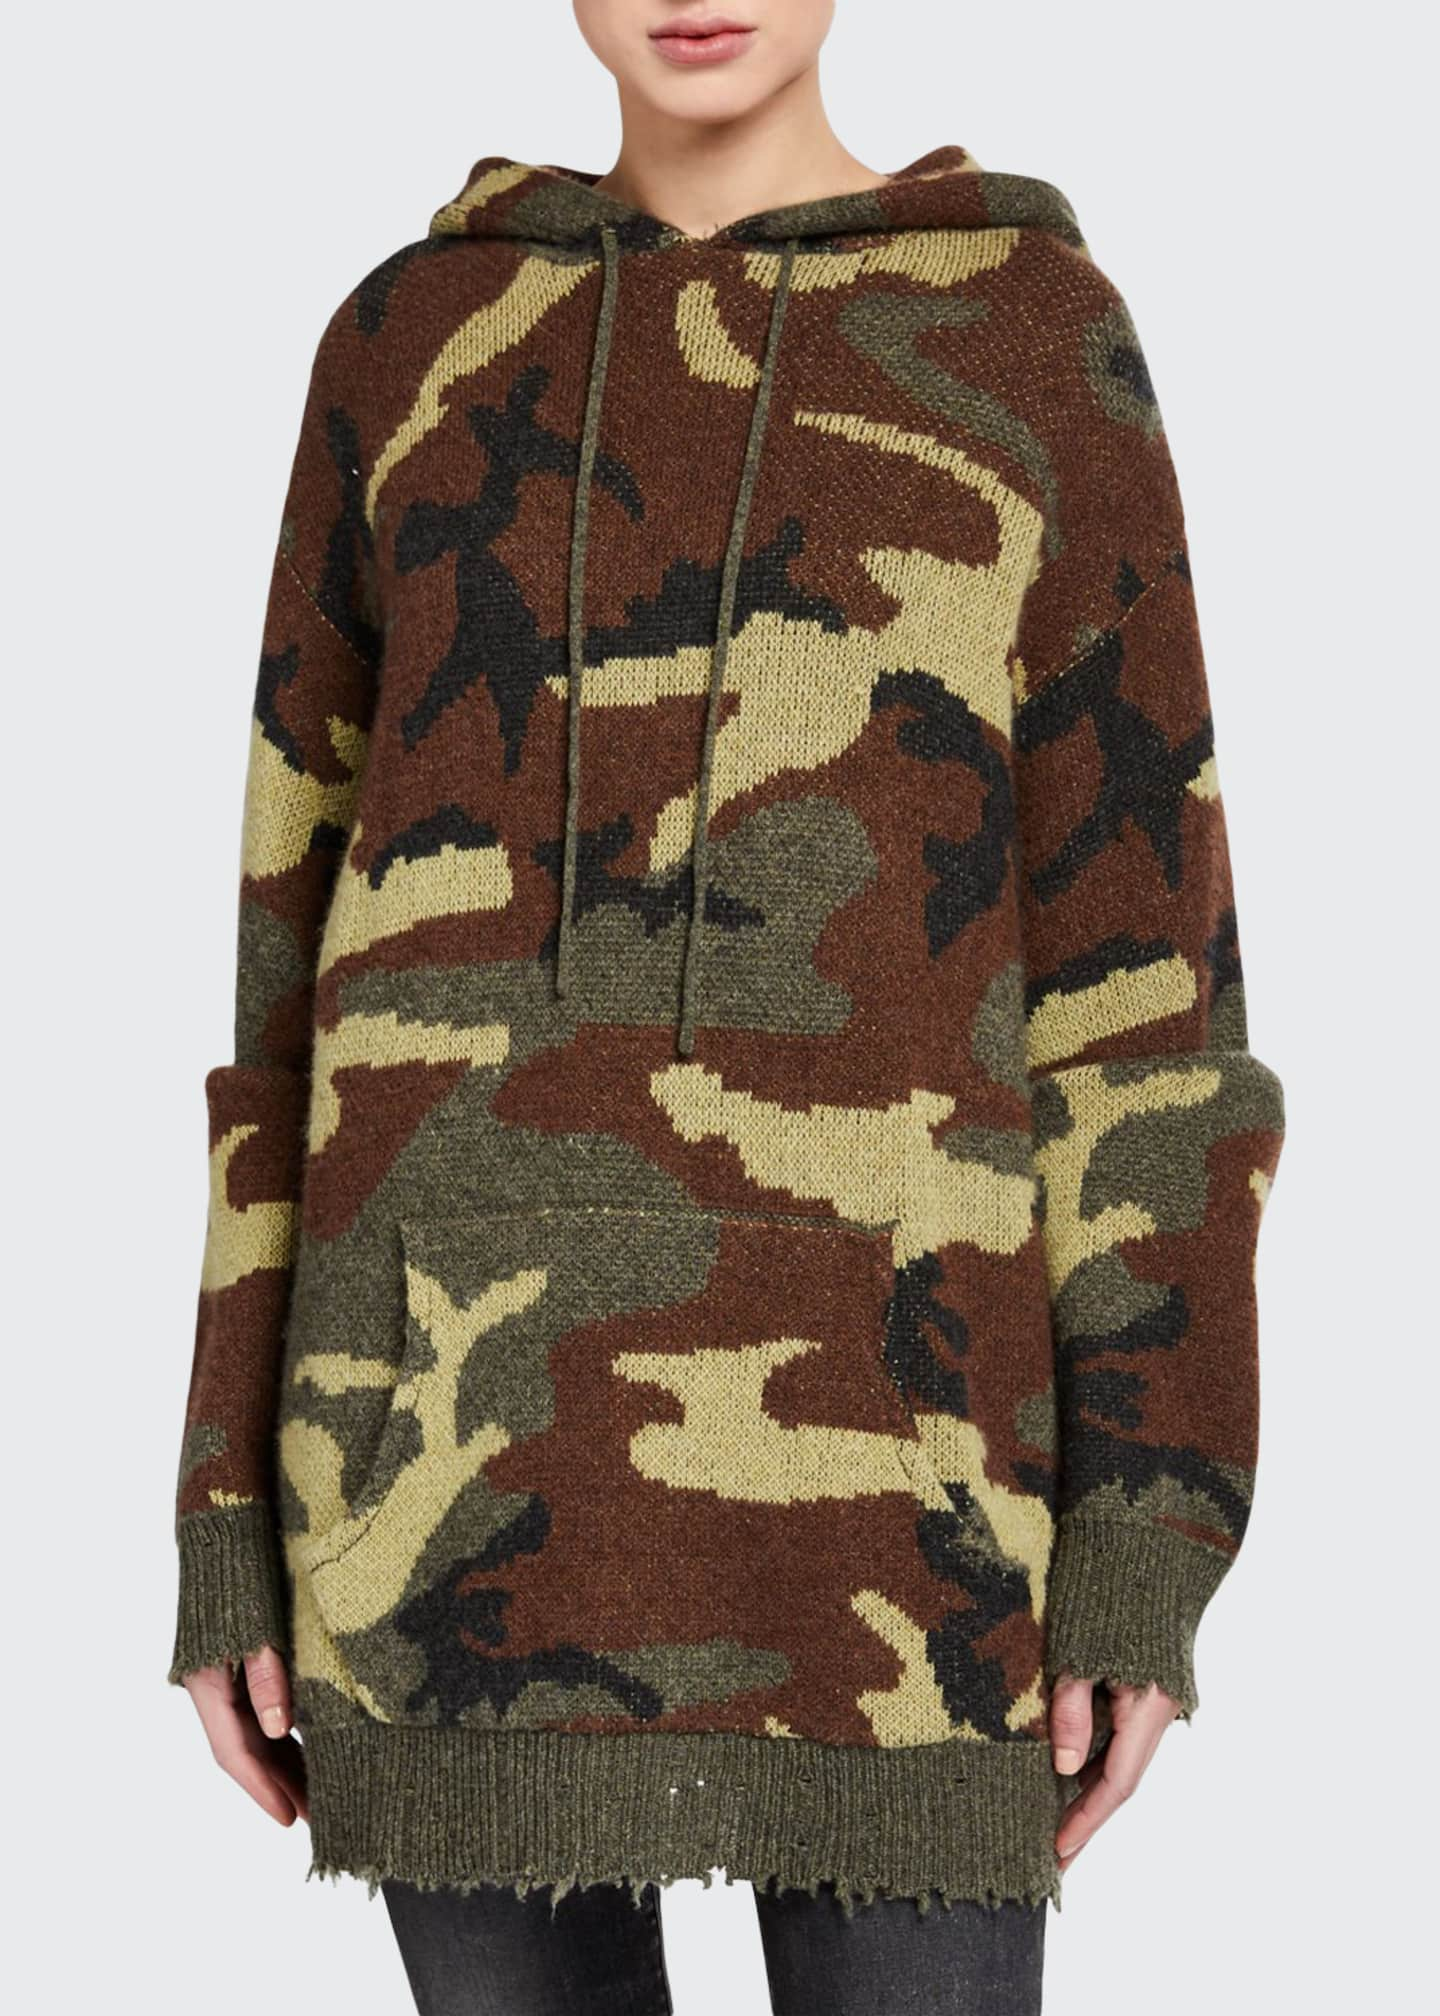 13 Rattles Camo-Print Hooded Pullover Sweater